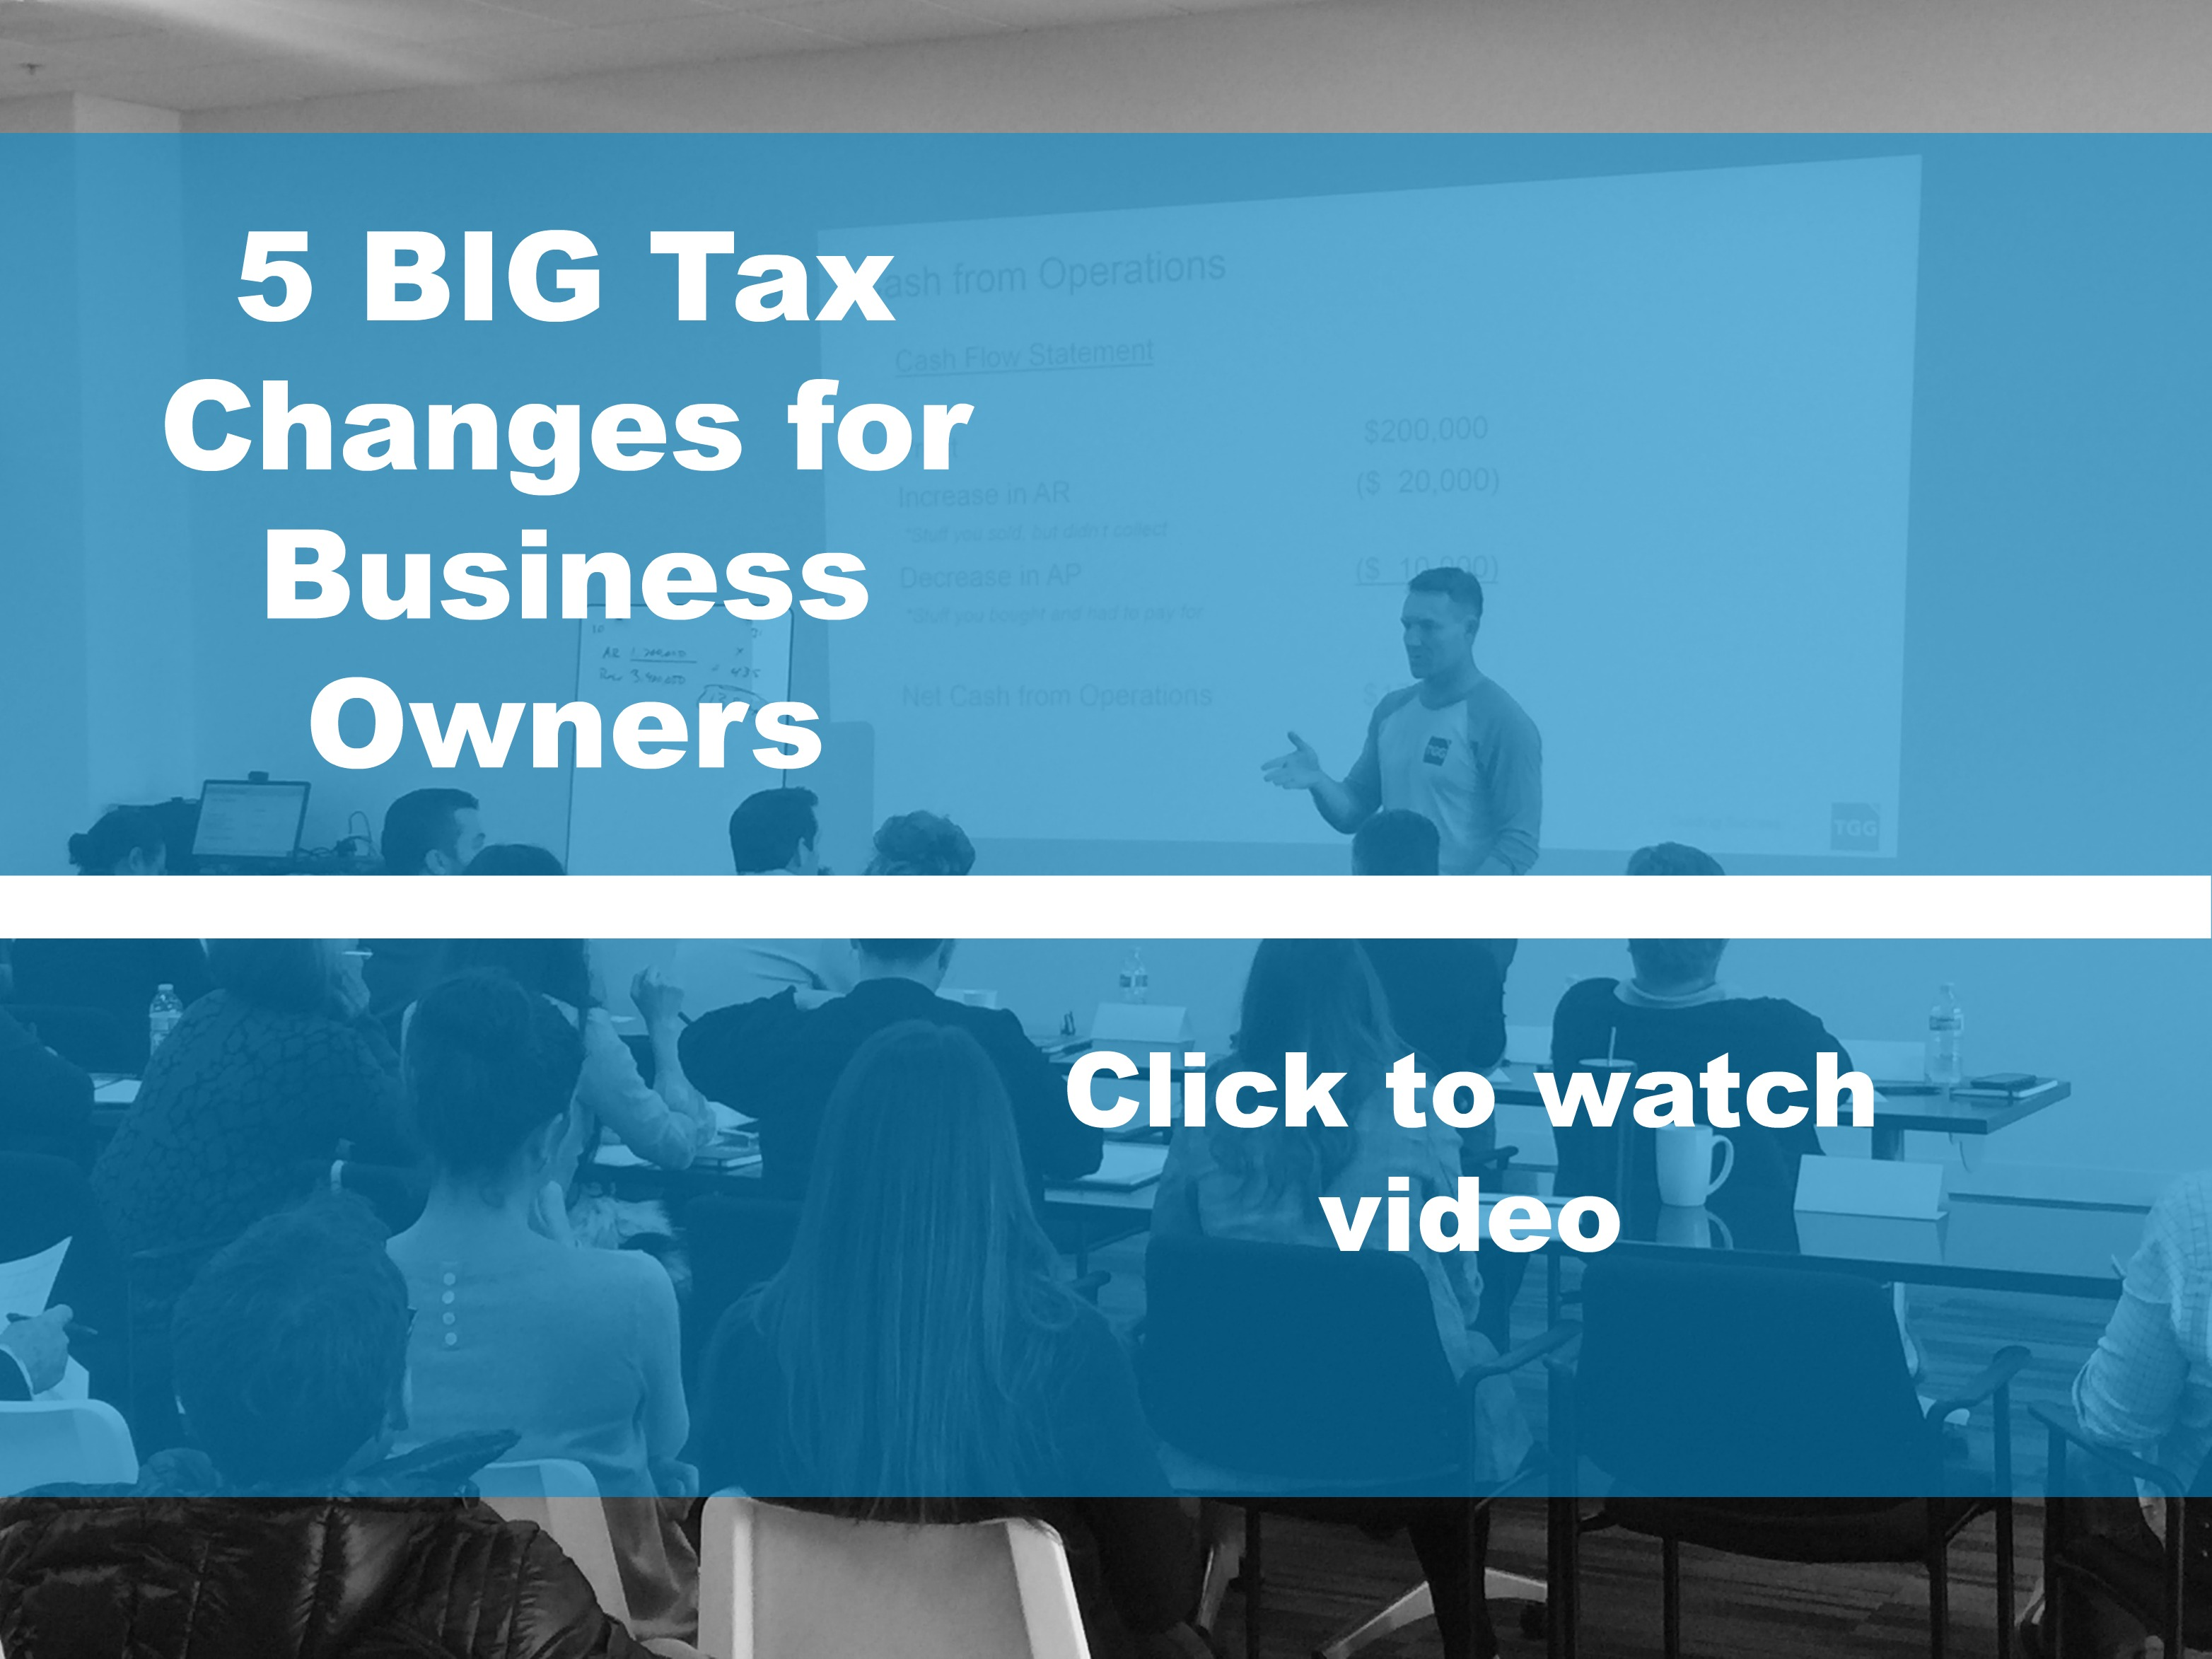 5 BIG Tax Changes for Small Business Owners